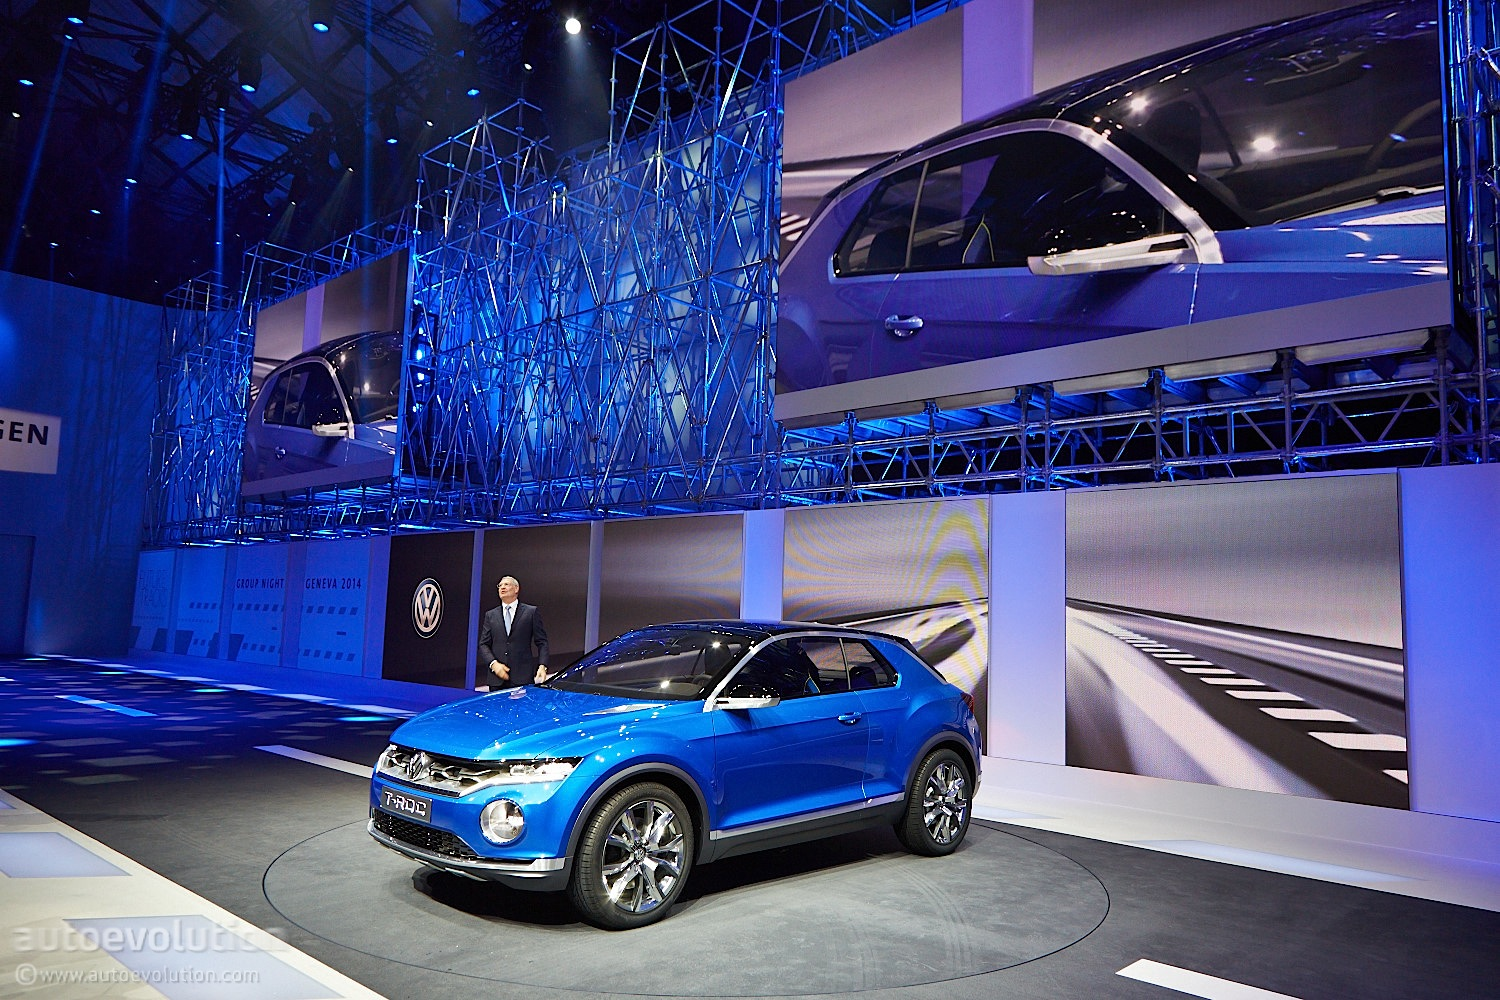 2018 Volkswagen T-Roc Funky SUV Teased By Official Sketches, Debuts On August 23 - autoevolution